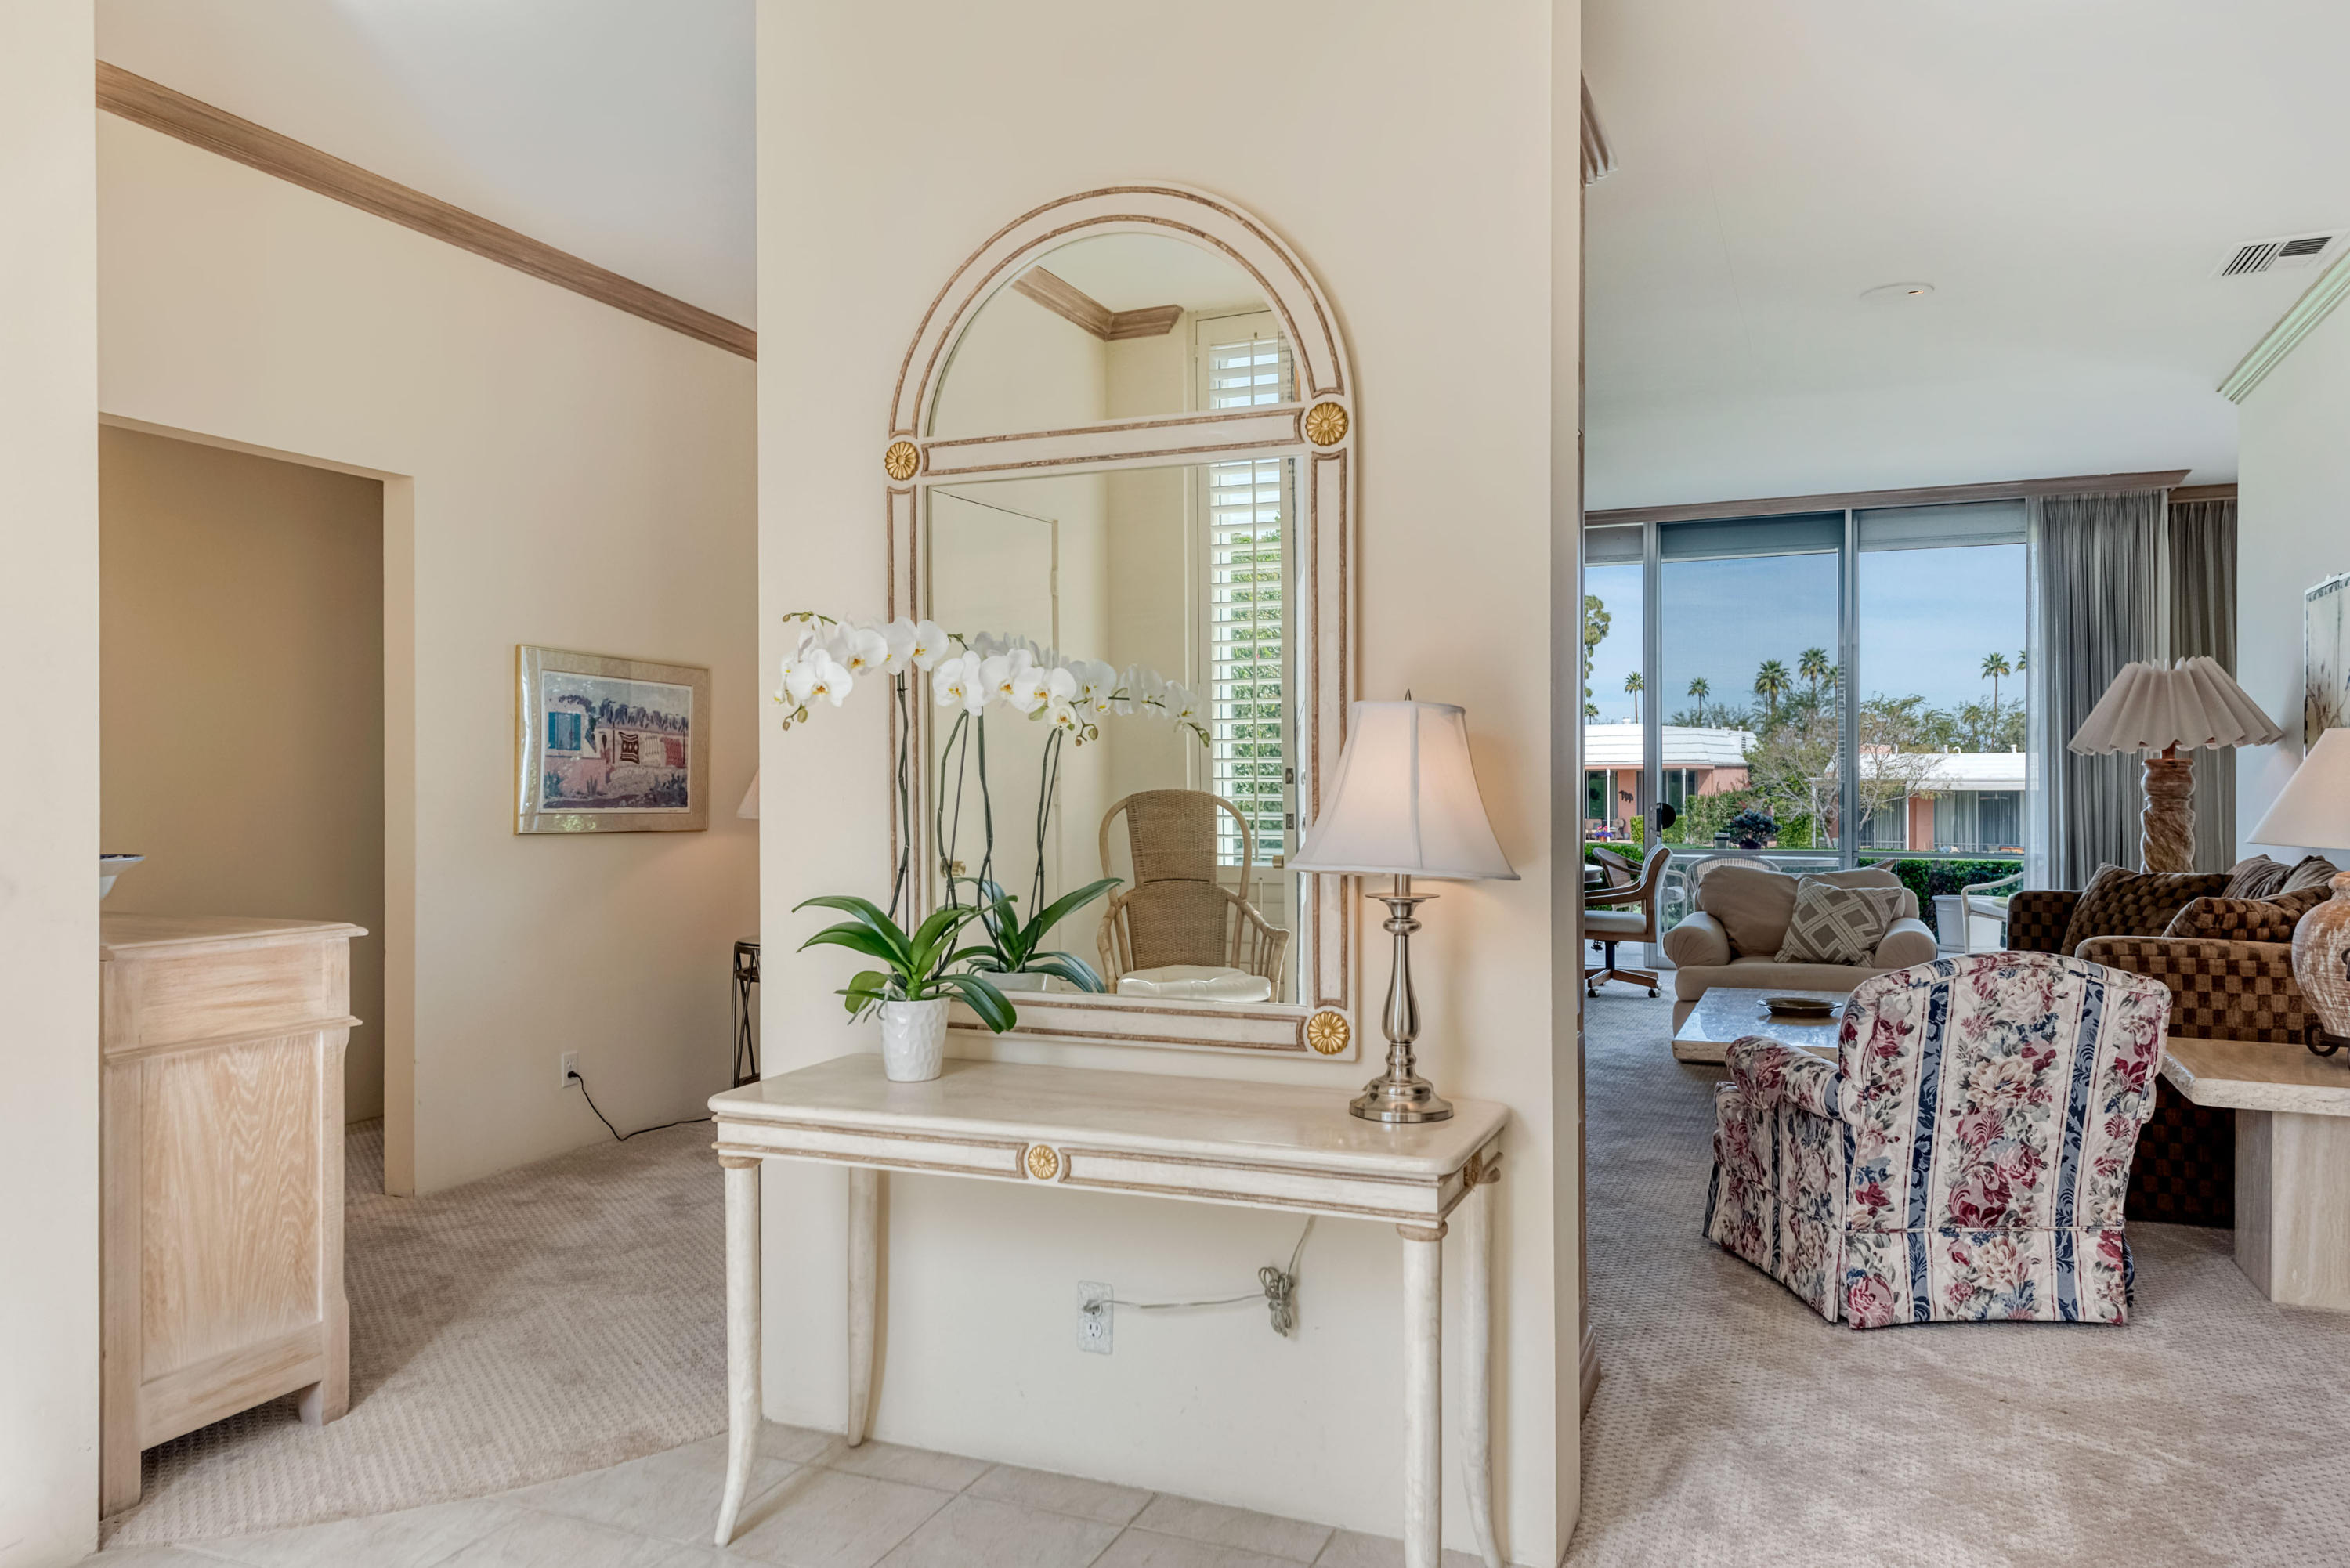 47114 El Menara Circle, Palm Desert, California 92260, 3 Bedrooms Bedrooms, ,3 BathroomsBathrooms,Residential,For Sale,47114 El Menara Circle,219041394